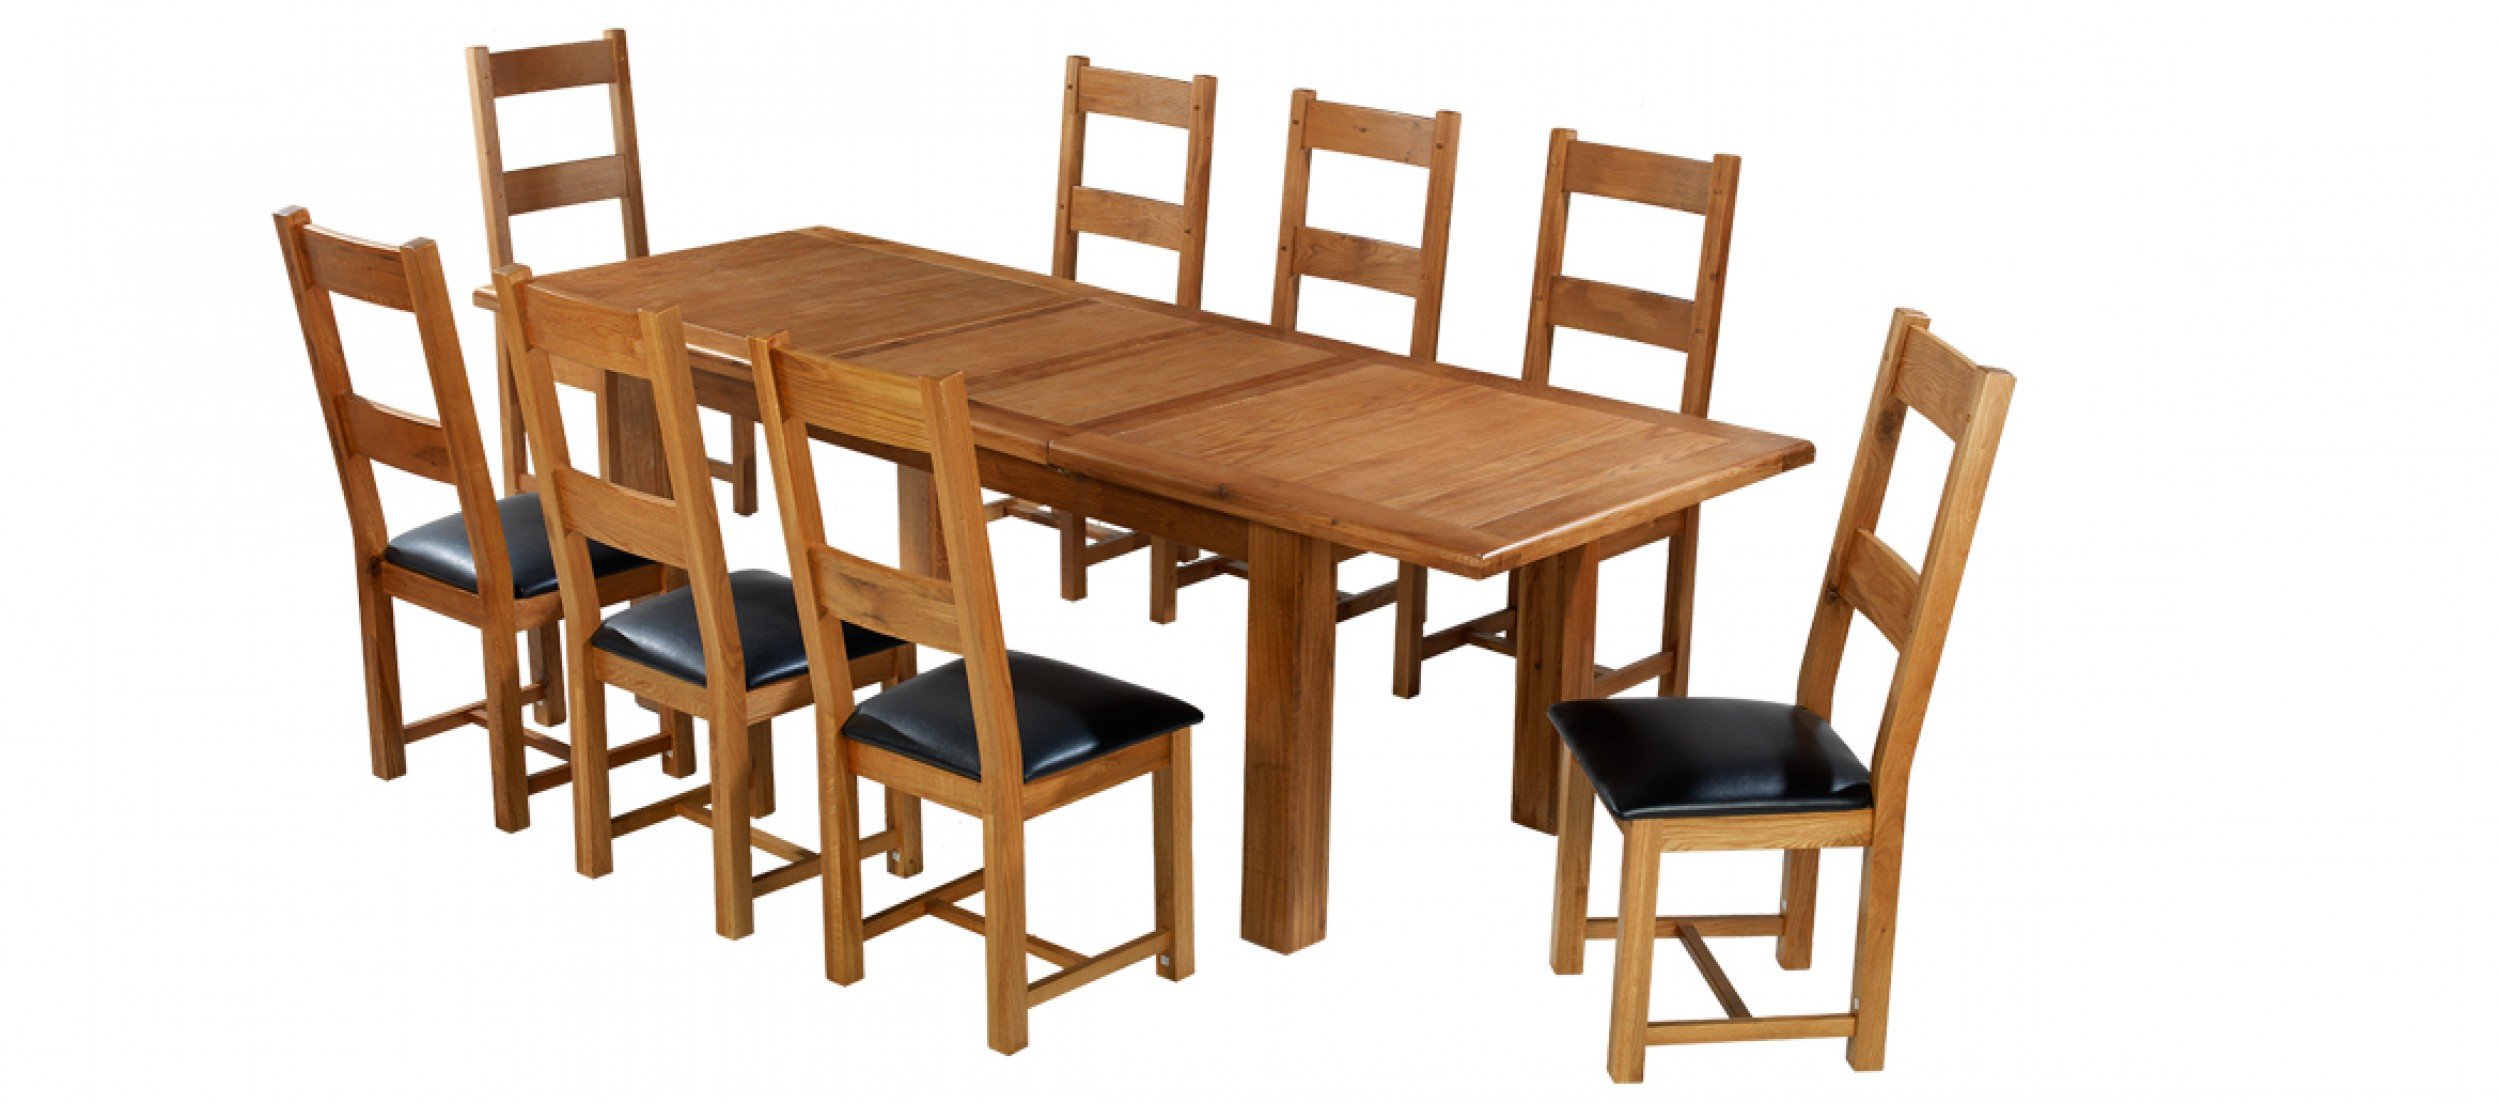 Dining Table 8 Chairs Barham Oak 180 250 Cm Extending Dining Table And 8 Chairs